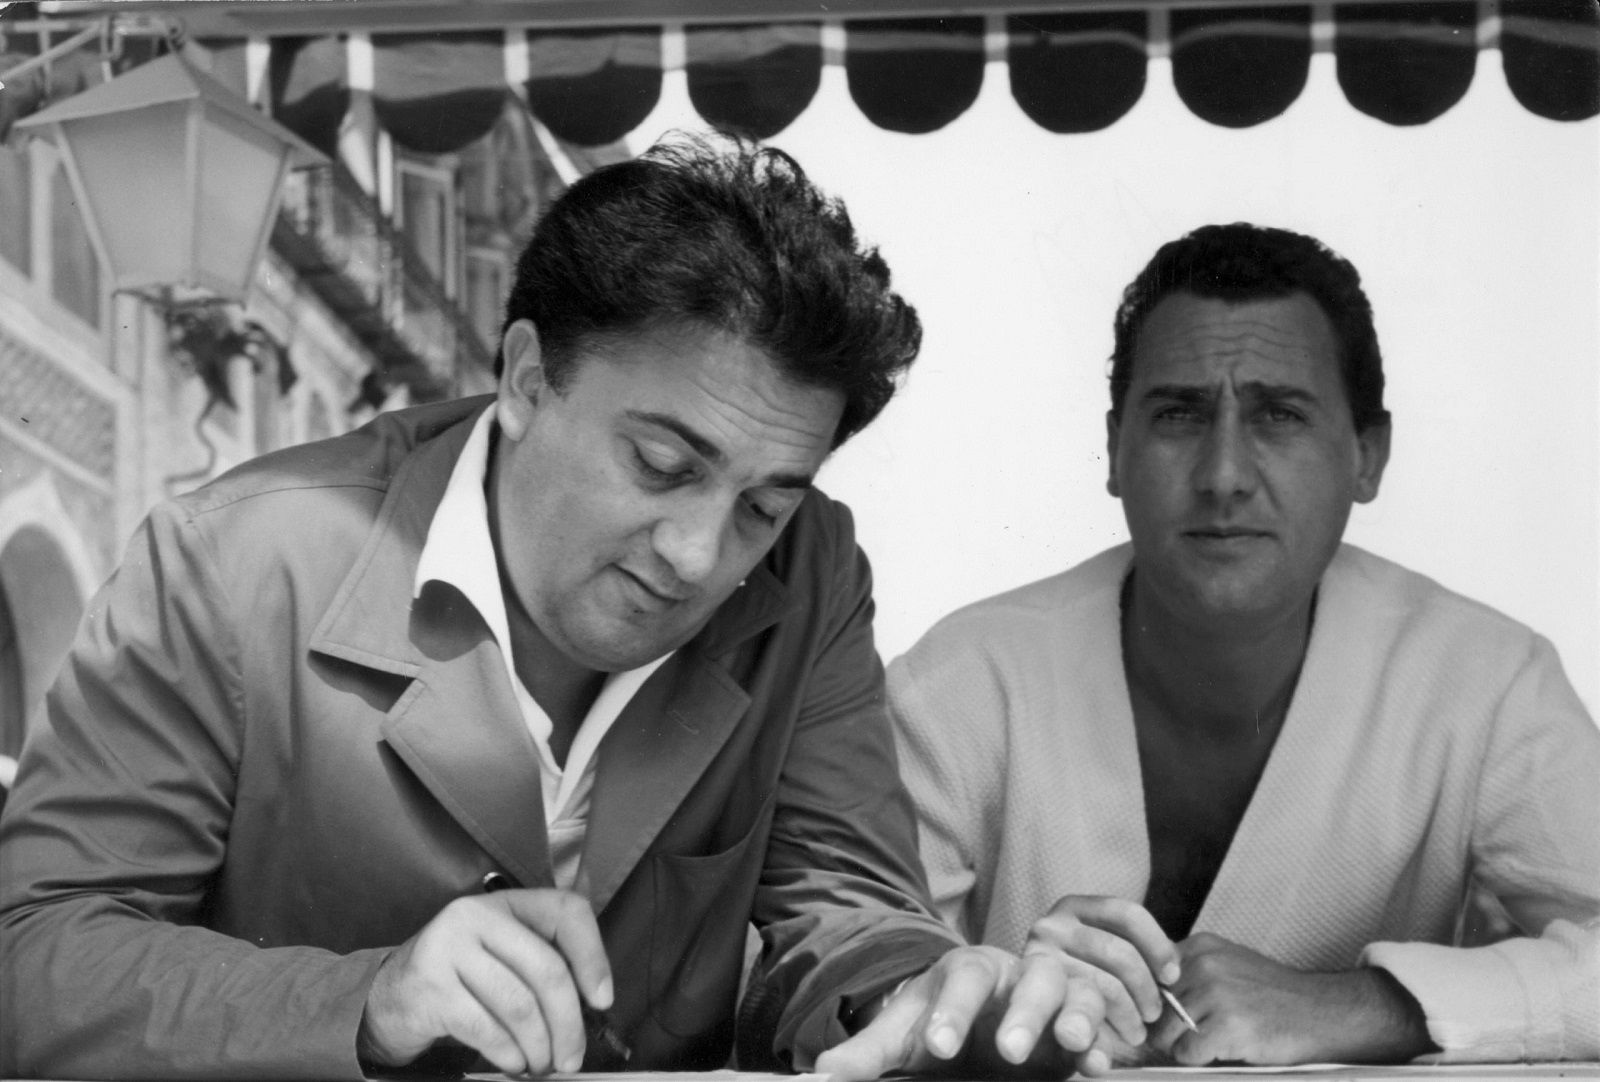 Alberto Sordi, Federico Fellini at the Venice Film Festival 1953- In case of set scenes, it is forbidden to reproduce the photograph out of context of the promotion of the film. It must be credited to the Film Company and the photographer assigned by or authorized by on the set by the Film Company.